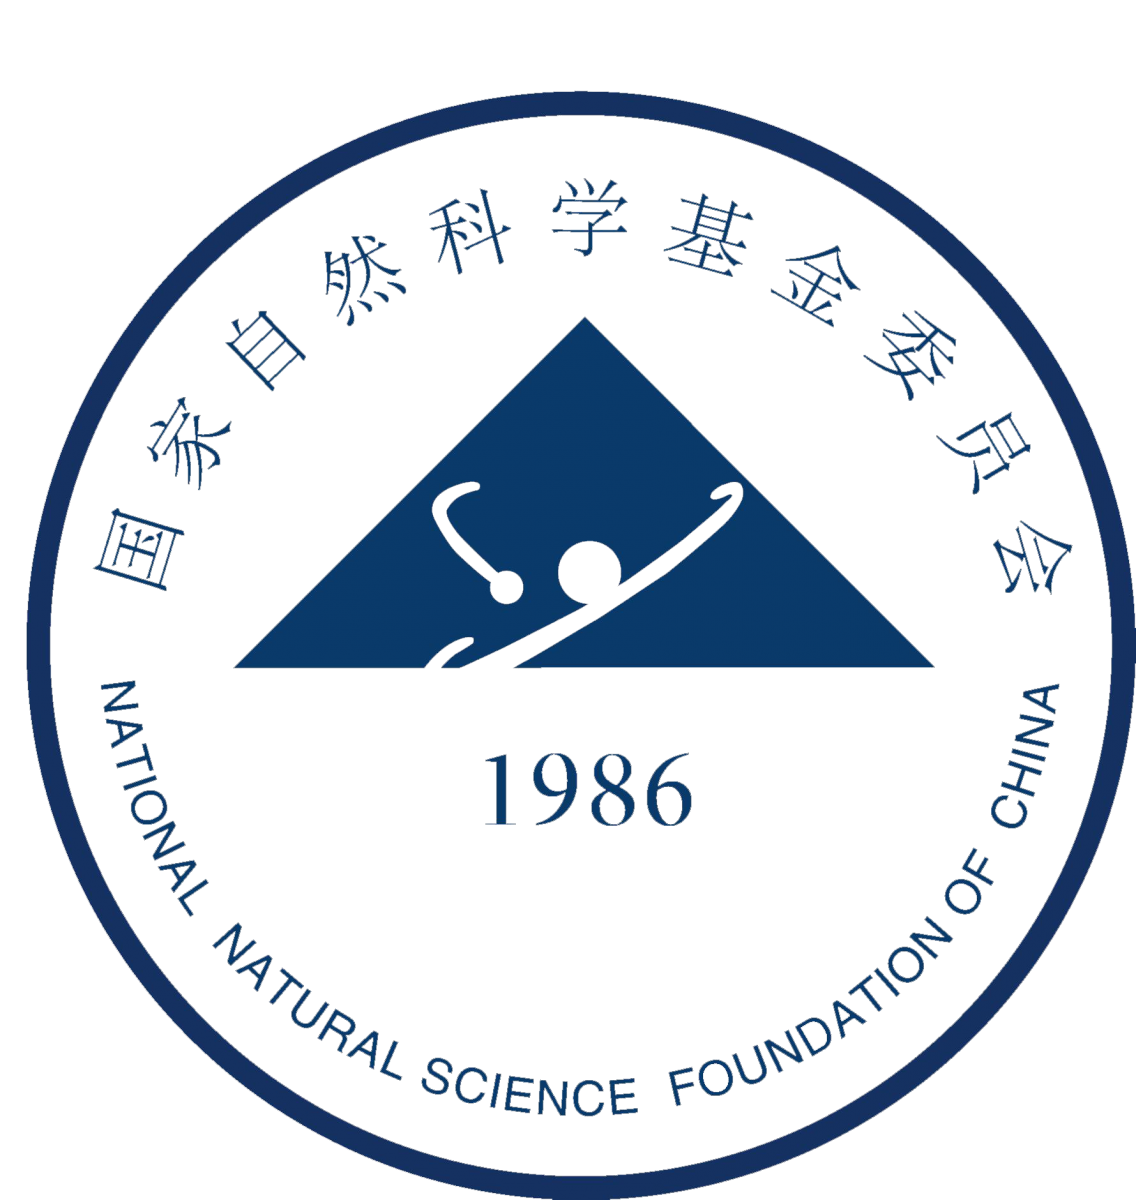 National Natural Science Foundation of China (NSFC) logotype